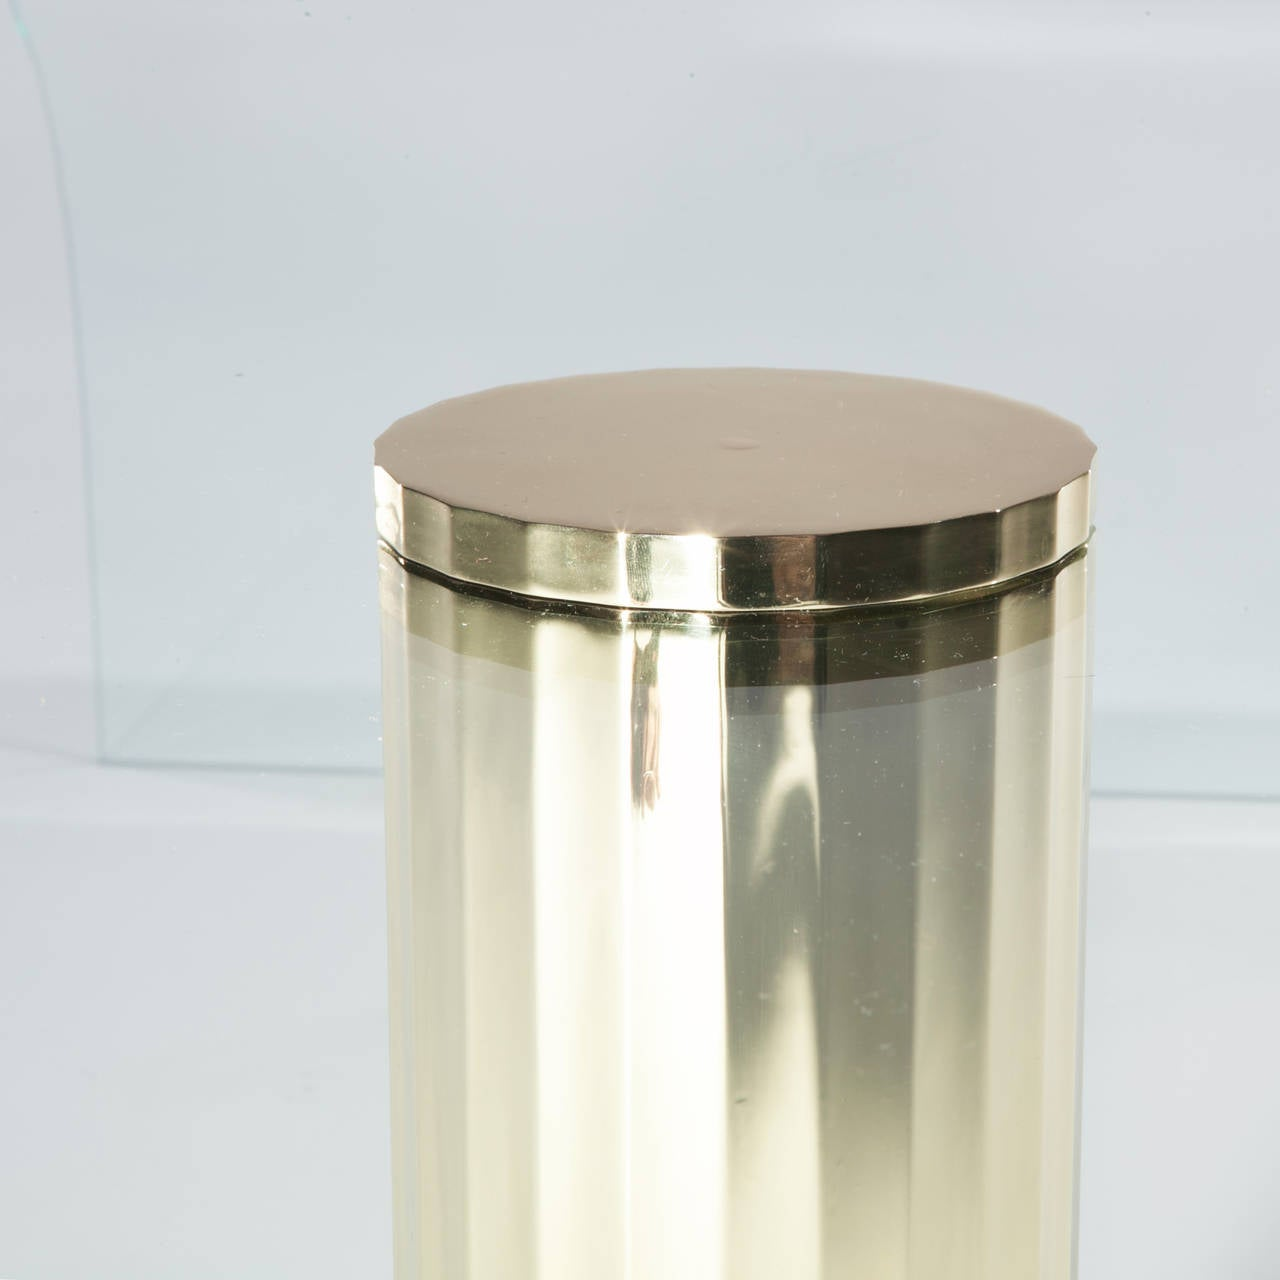 Curved glass cocktail table with single brass leg at 1stdibs for Designer cocktail tables glass